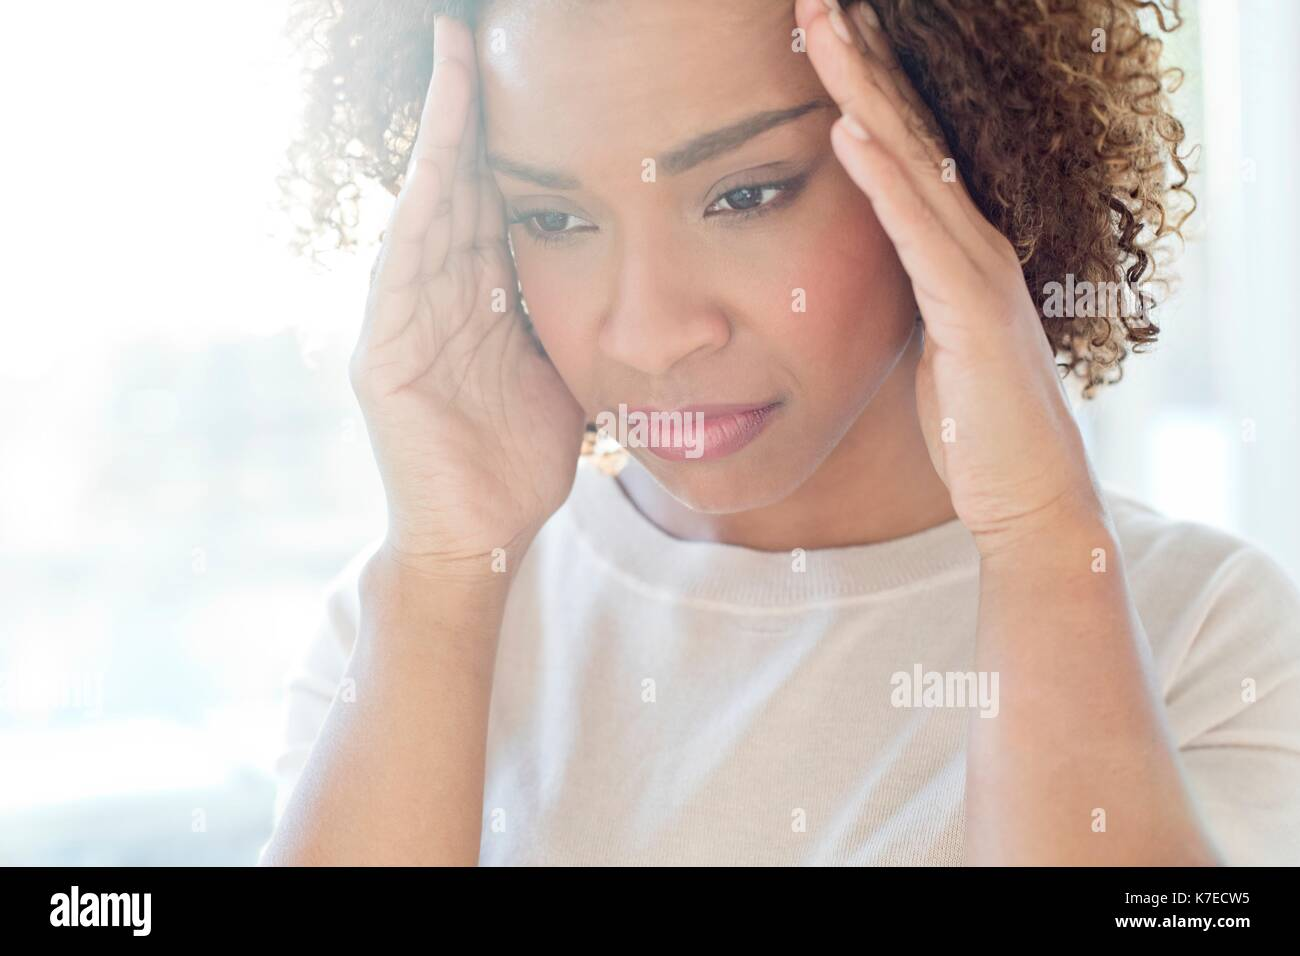 Mid adult woman touching her head. - Stock Image